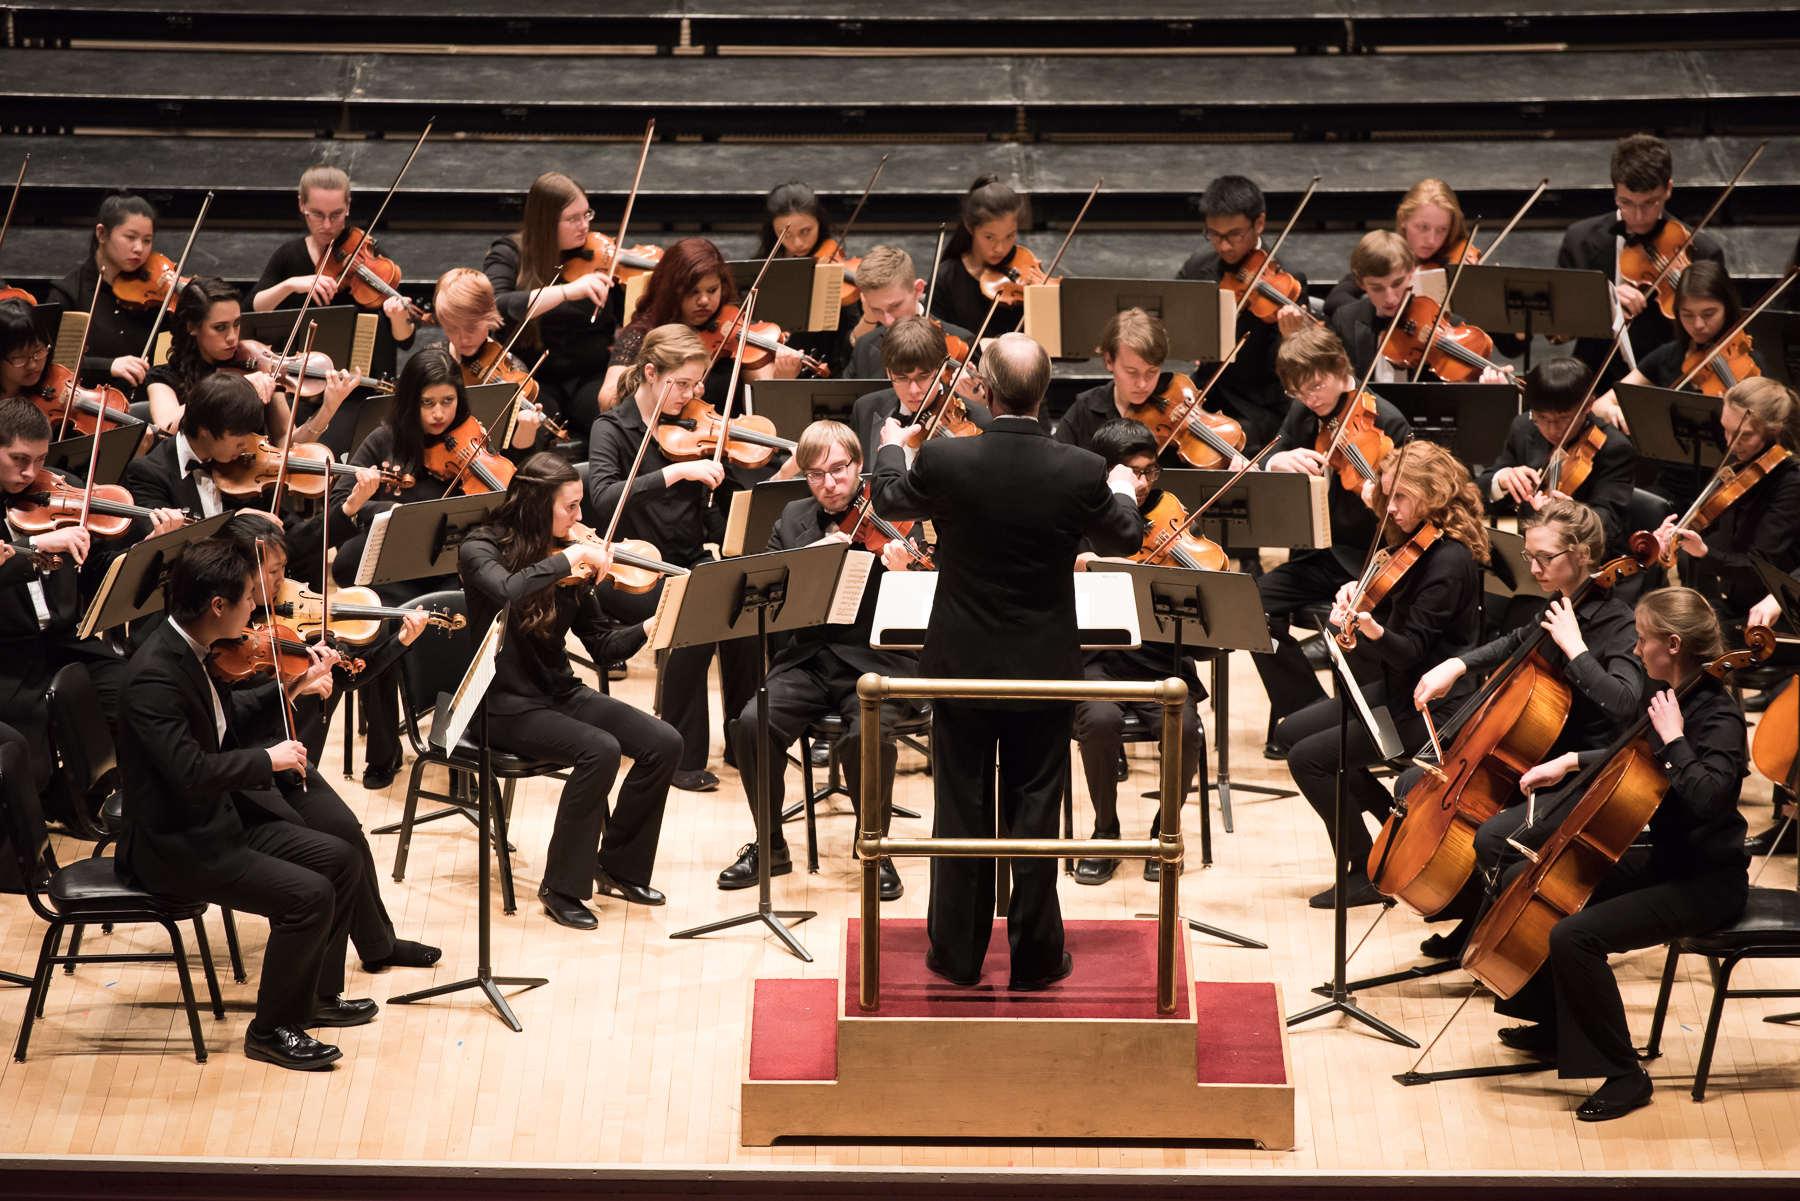 orchestra concert review essay Orchestra concert essay orchestra concert essay 967 words bartleby, free essay: the music played throughout all of the concerts  concert review on orchestra essays.